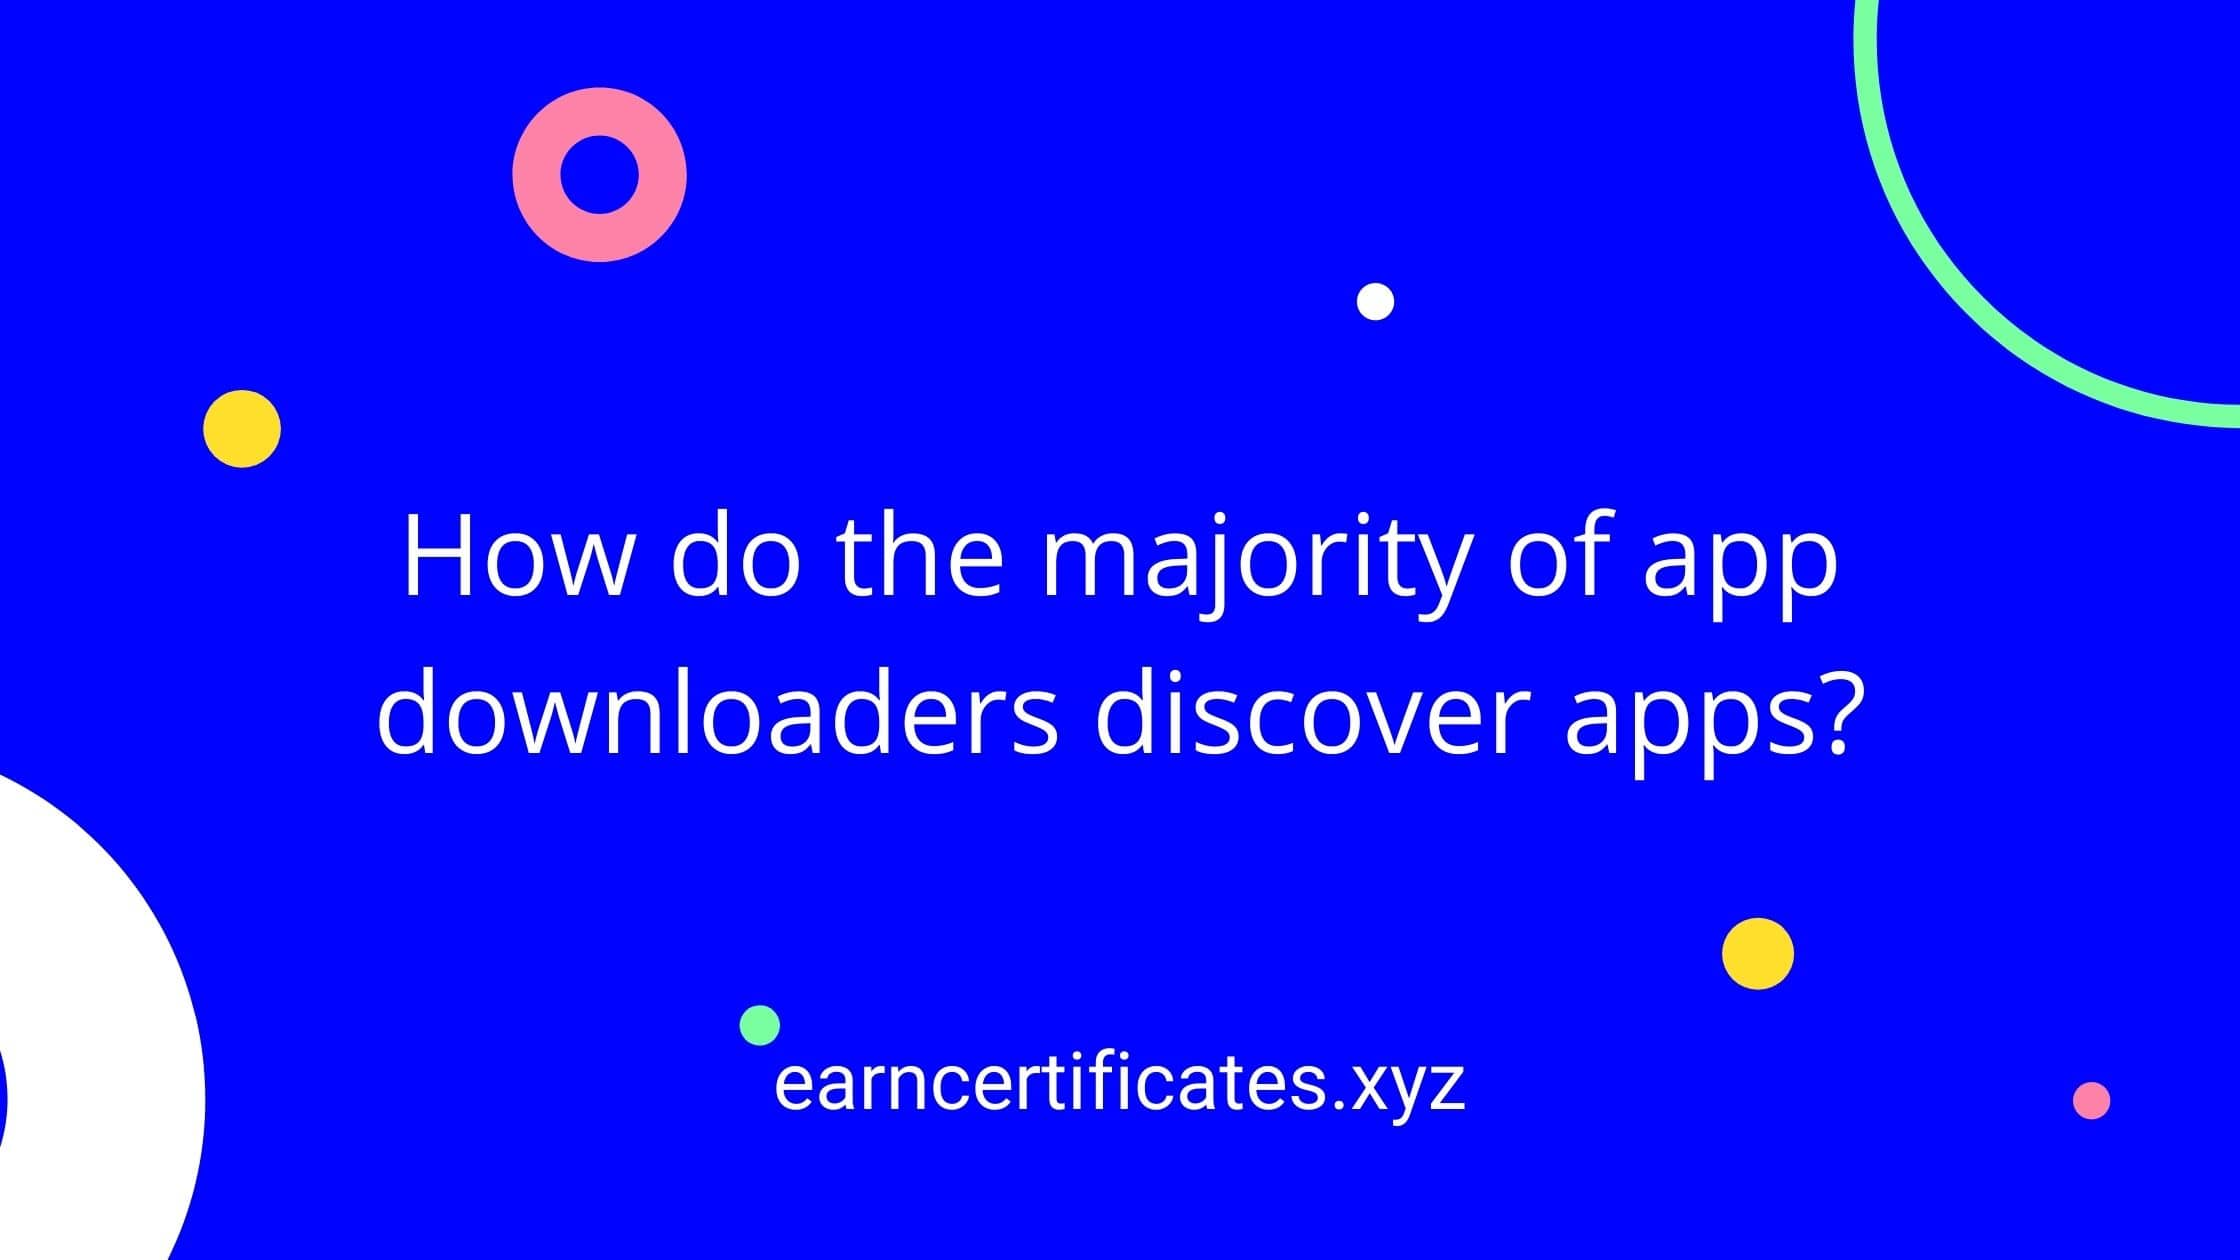 How do the majority of app downloaders discover apps?